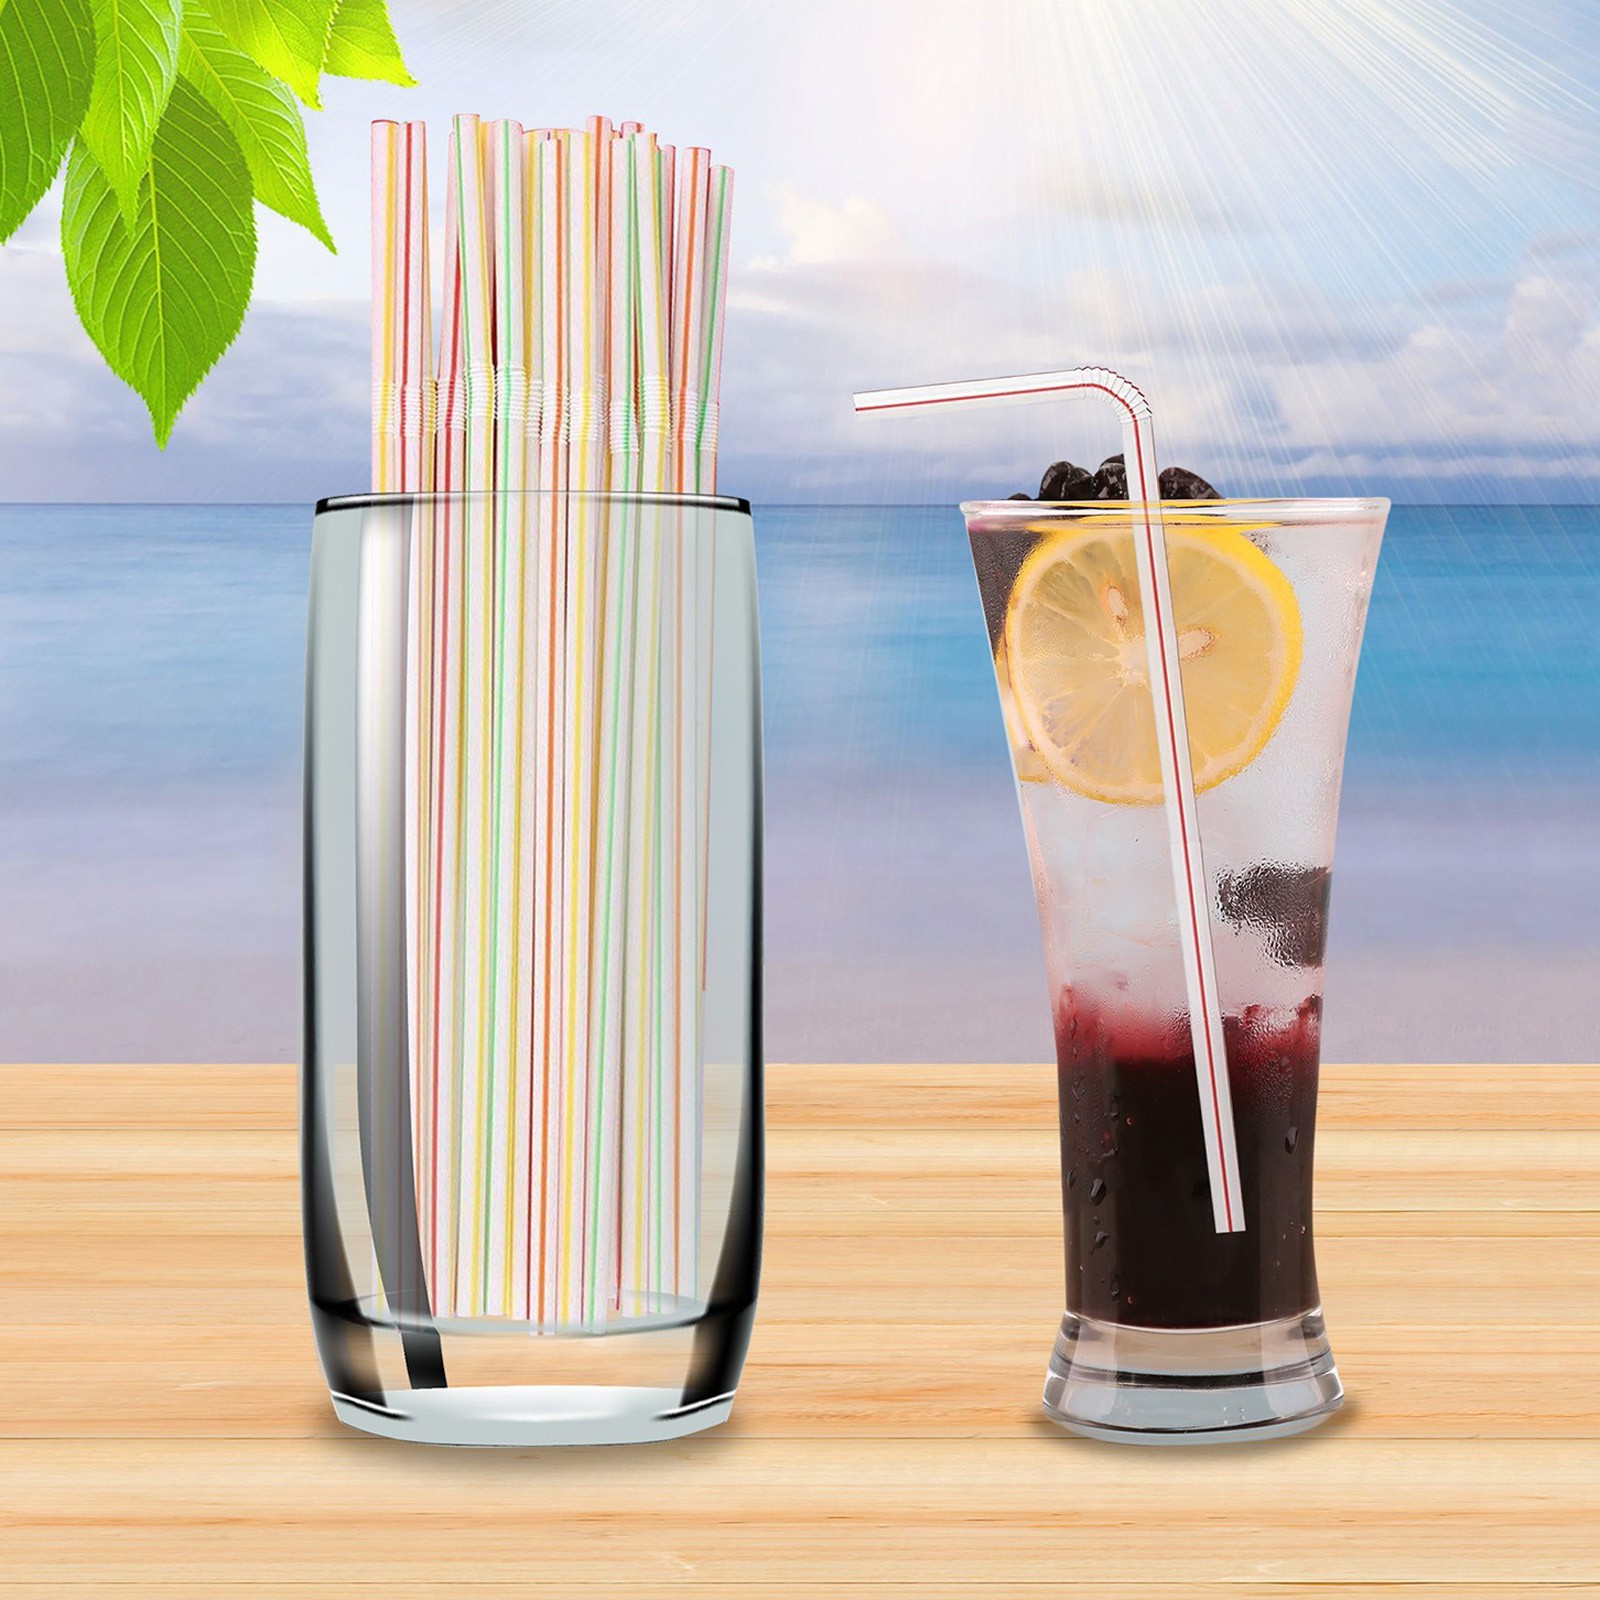 Disposable Plastic Drinking Straws Multi-colored Striped Bendable Elbow Straws Party Event Alike Supplies Color Random